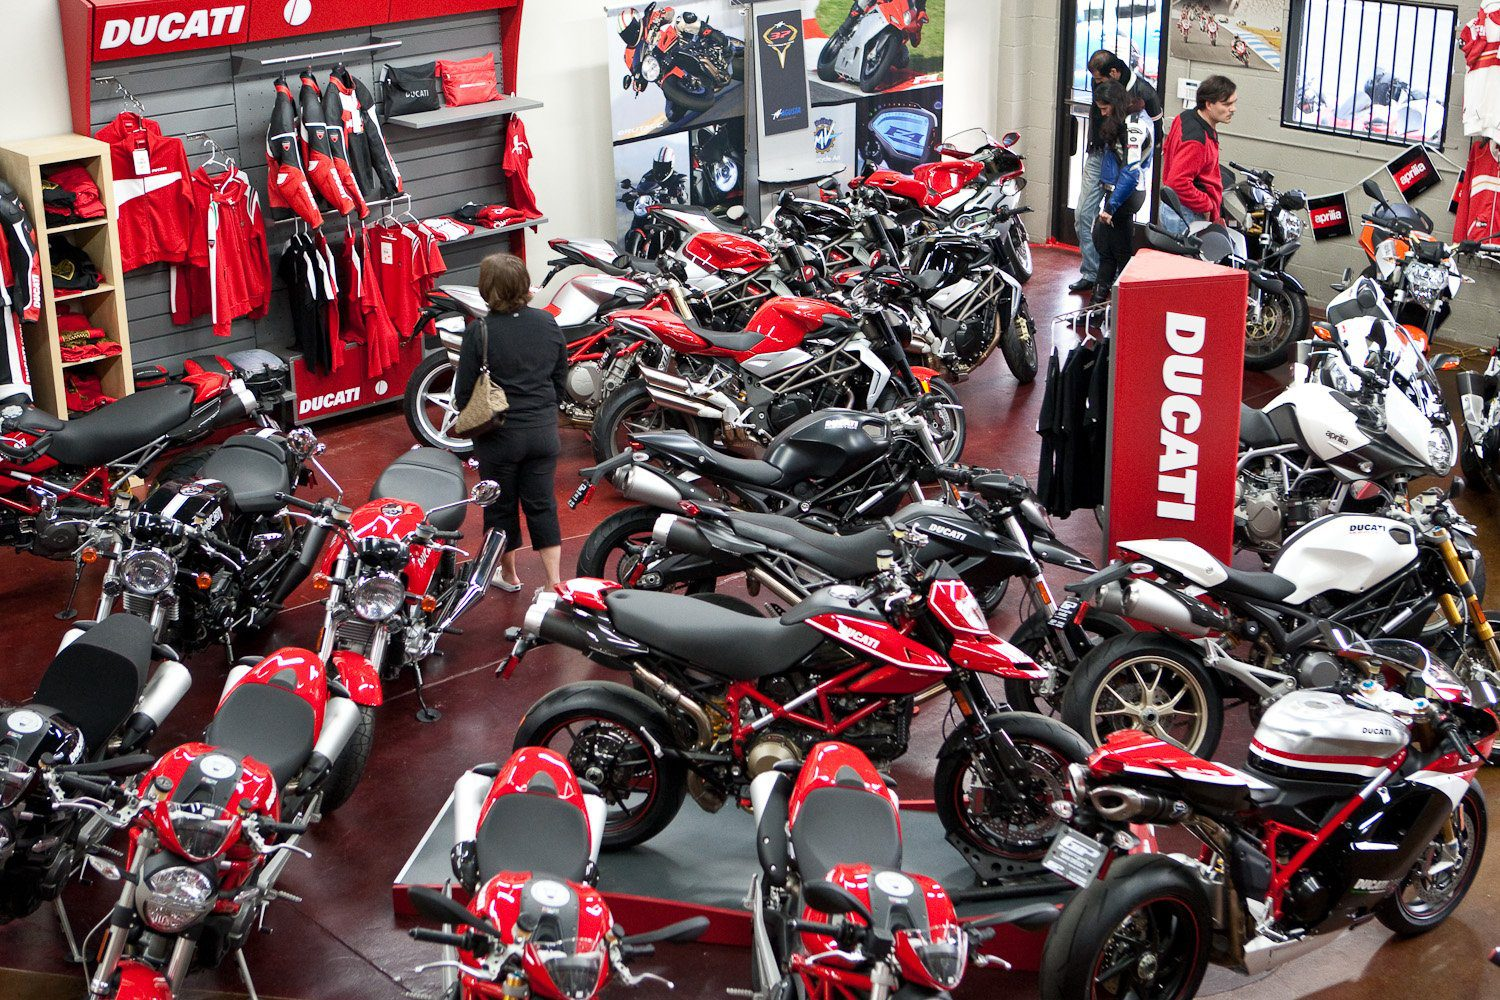 ducati showroom - how to test ride a motorcycle